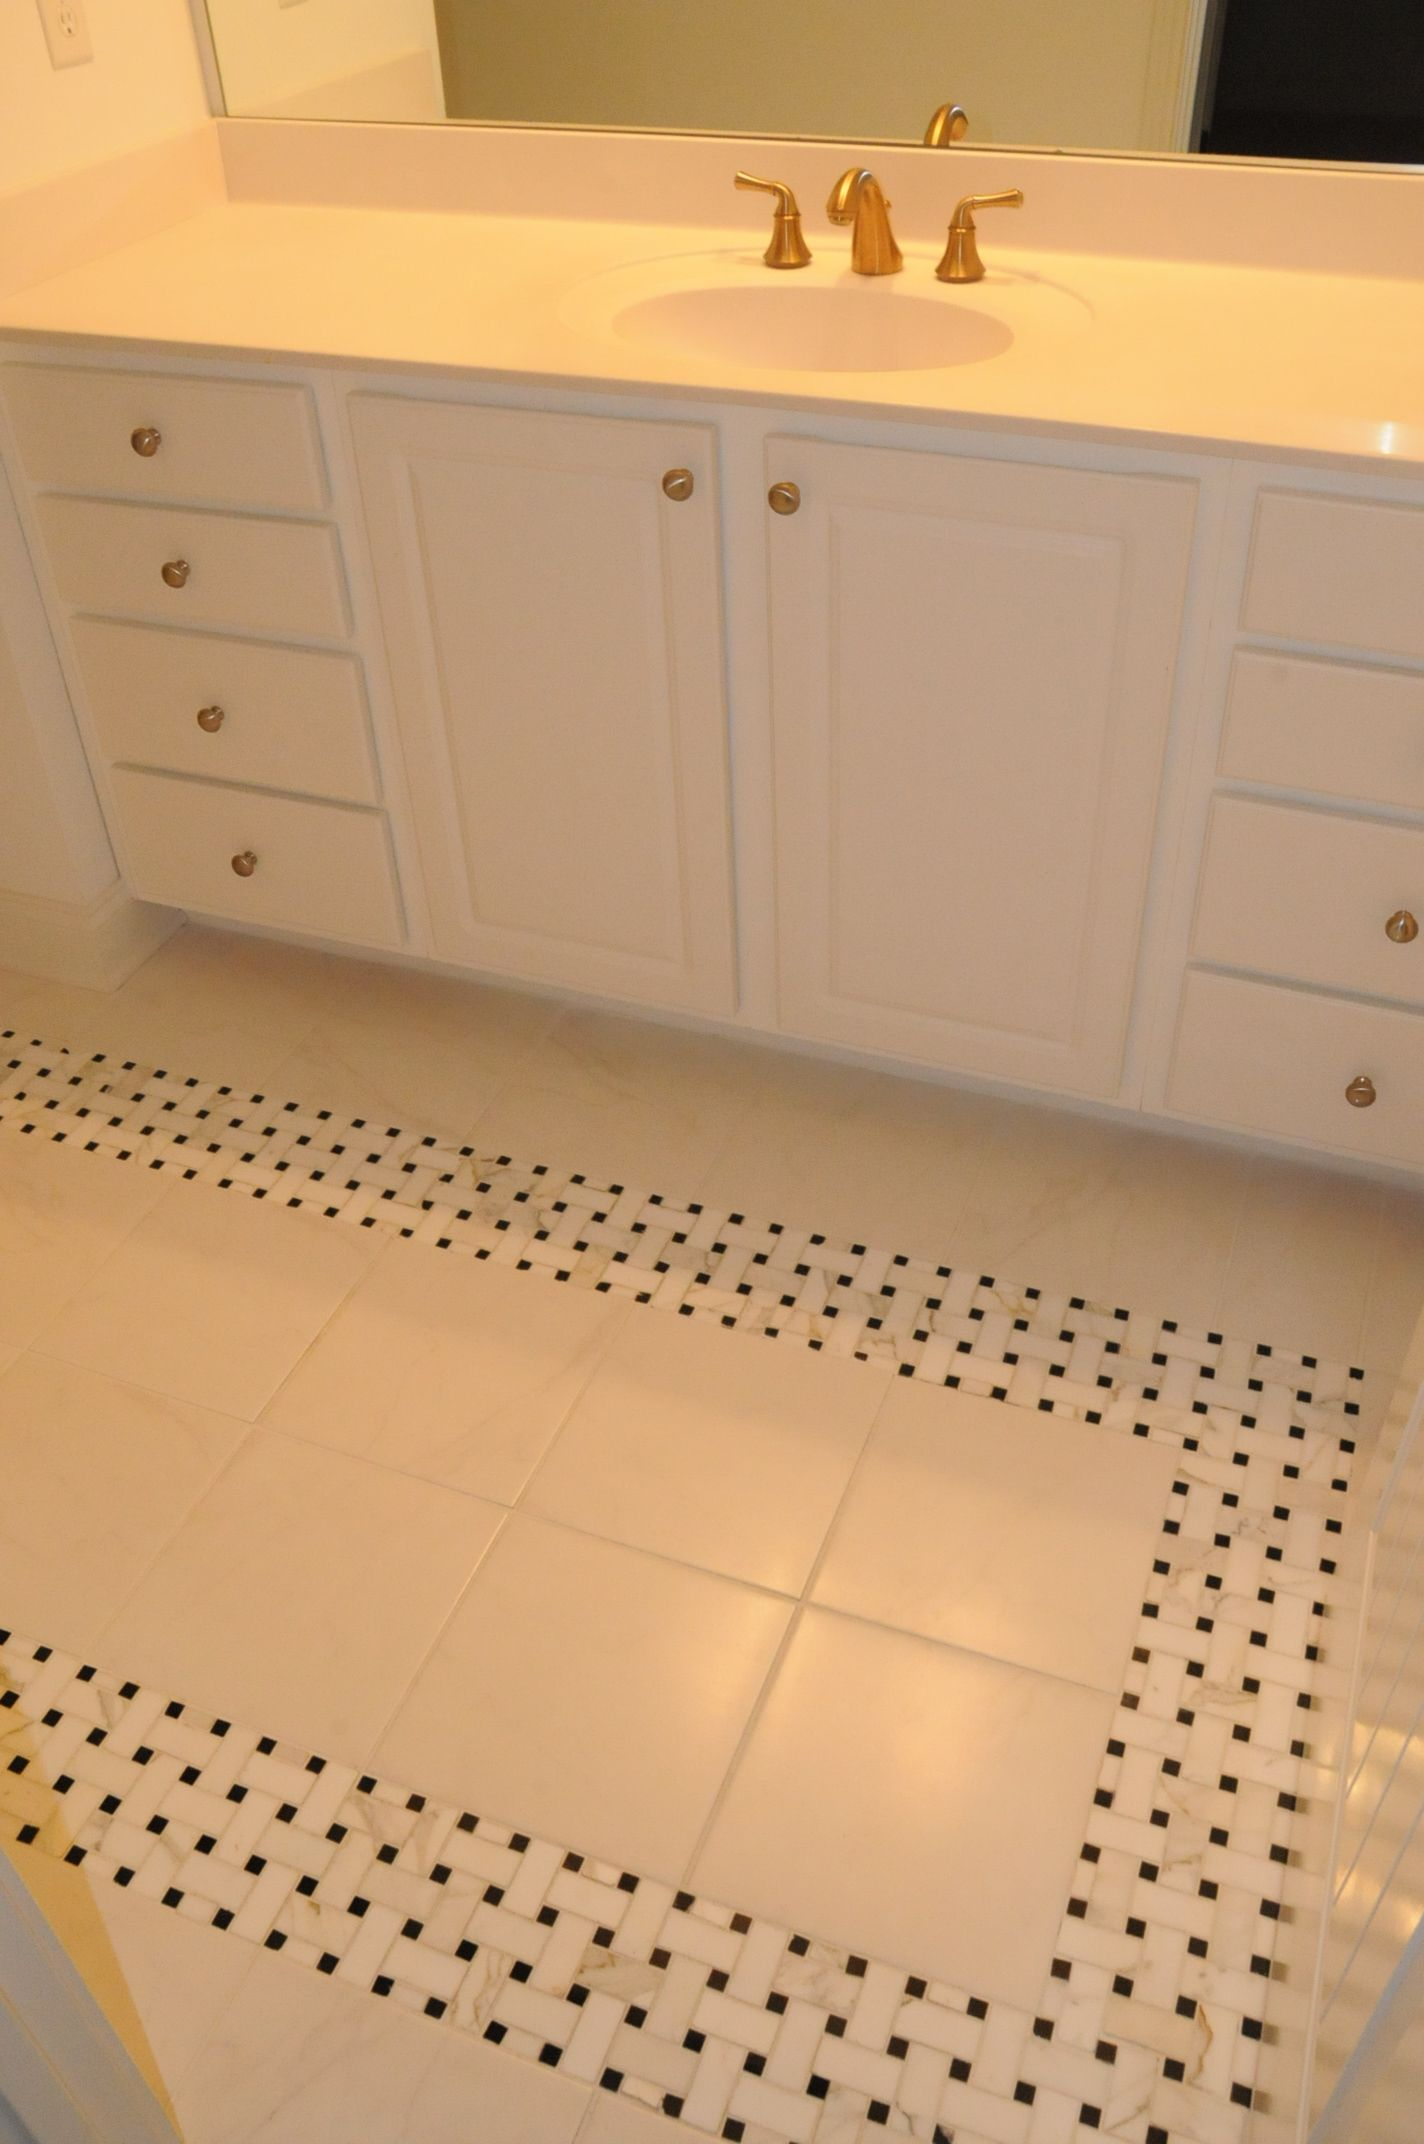 White tile laid straight with black and white woven border.